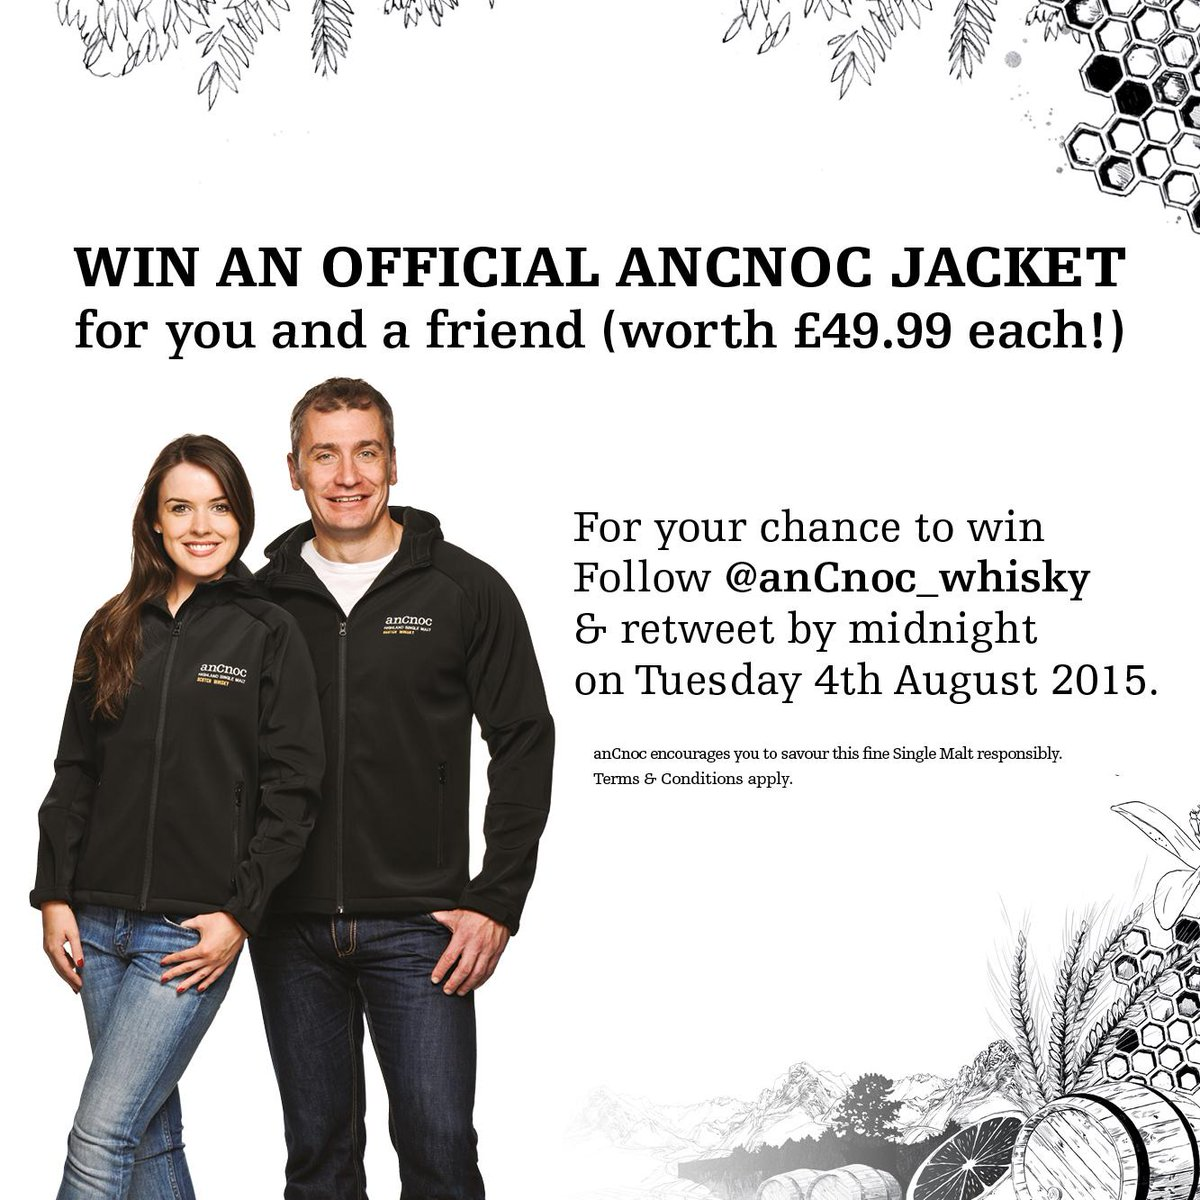 We're giving #anCnoc fans the chance to win a pair of anCnoc jackets, follow & retweet by 4th Aug 2015, good luck! http://t.co/upOG6uYpdb